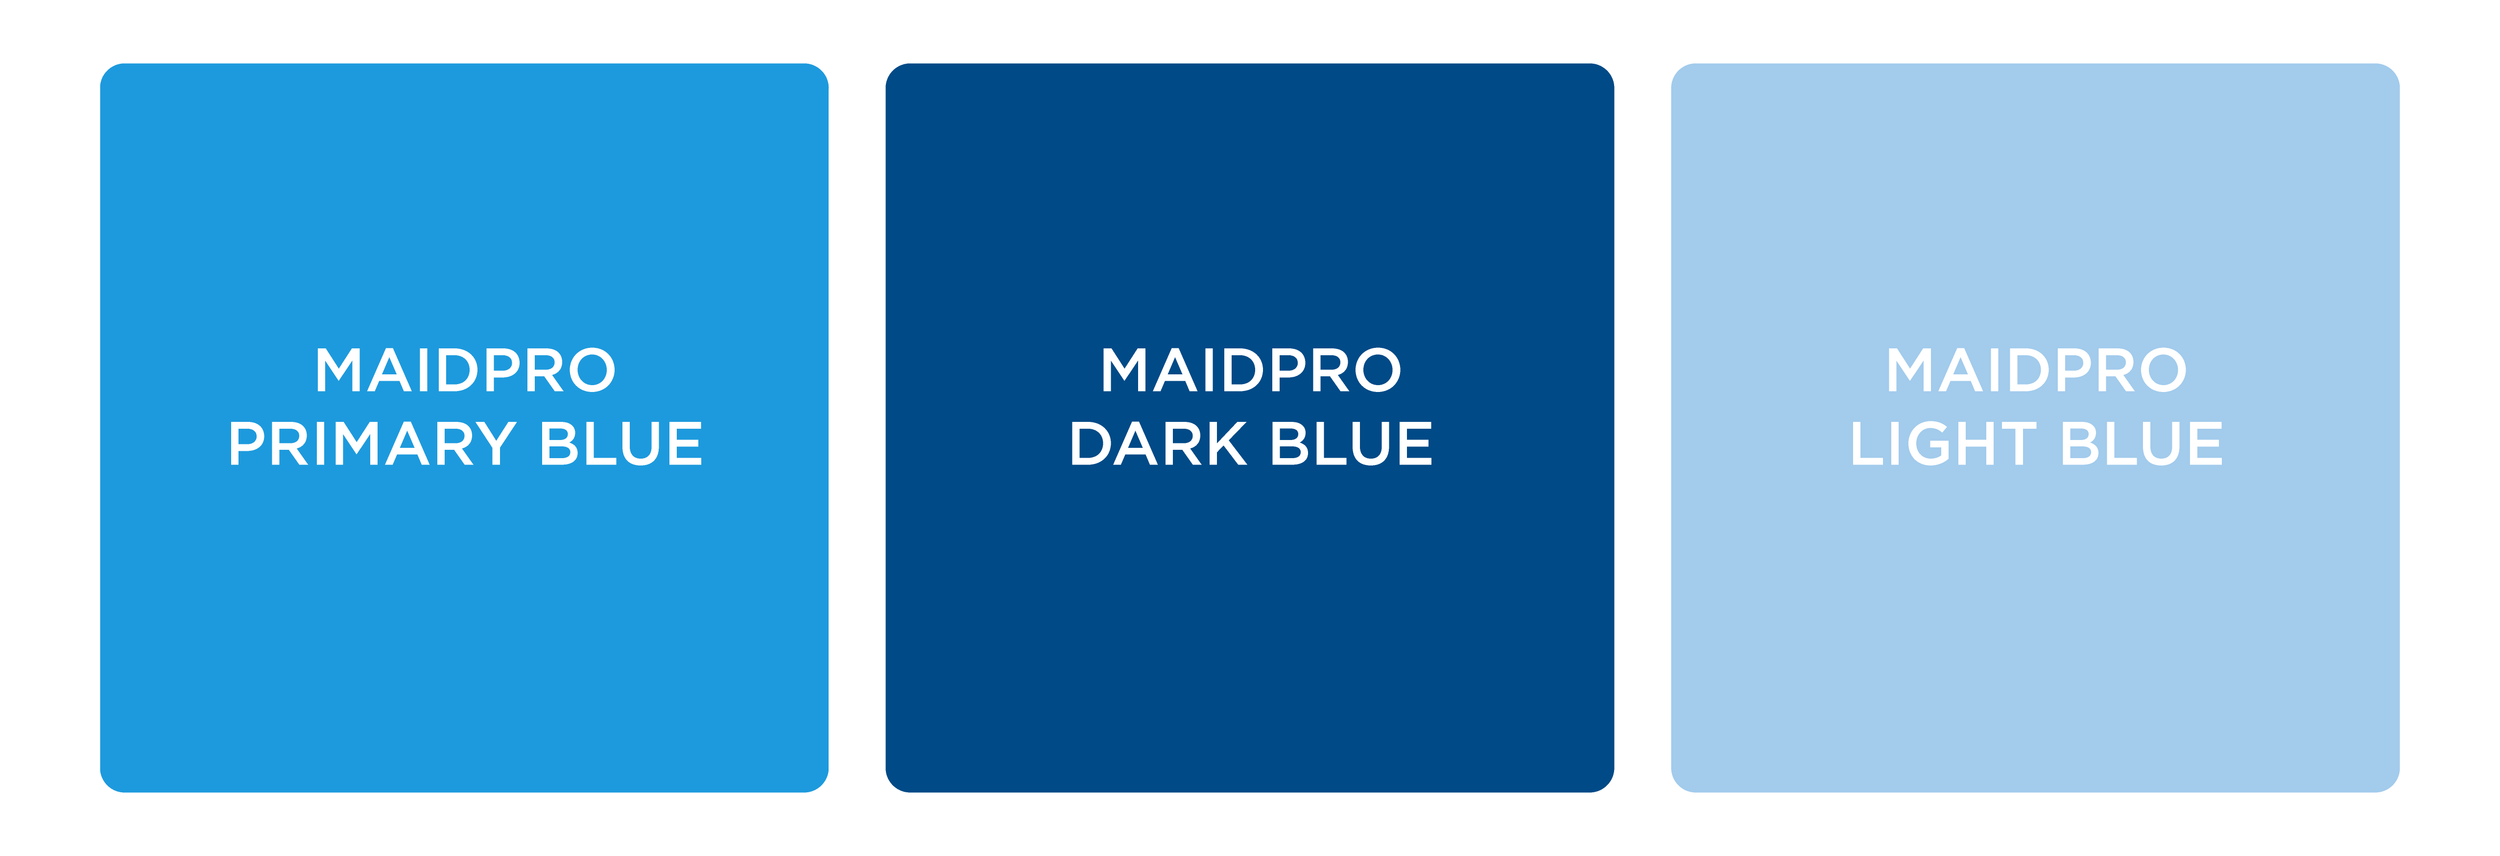 2018-MaidPro-Convention-colors-05.png